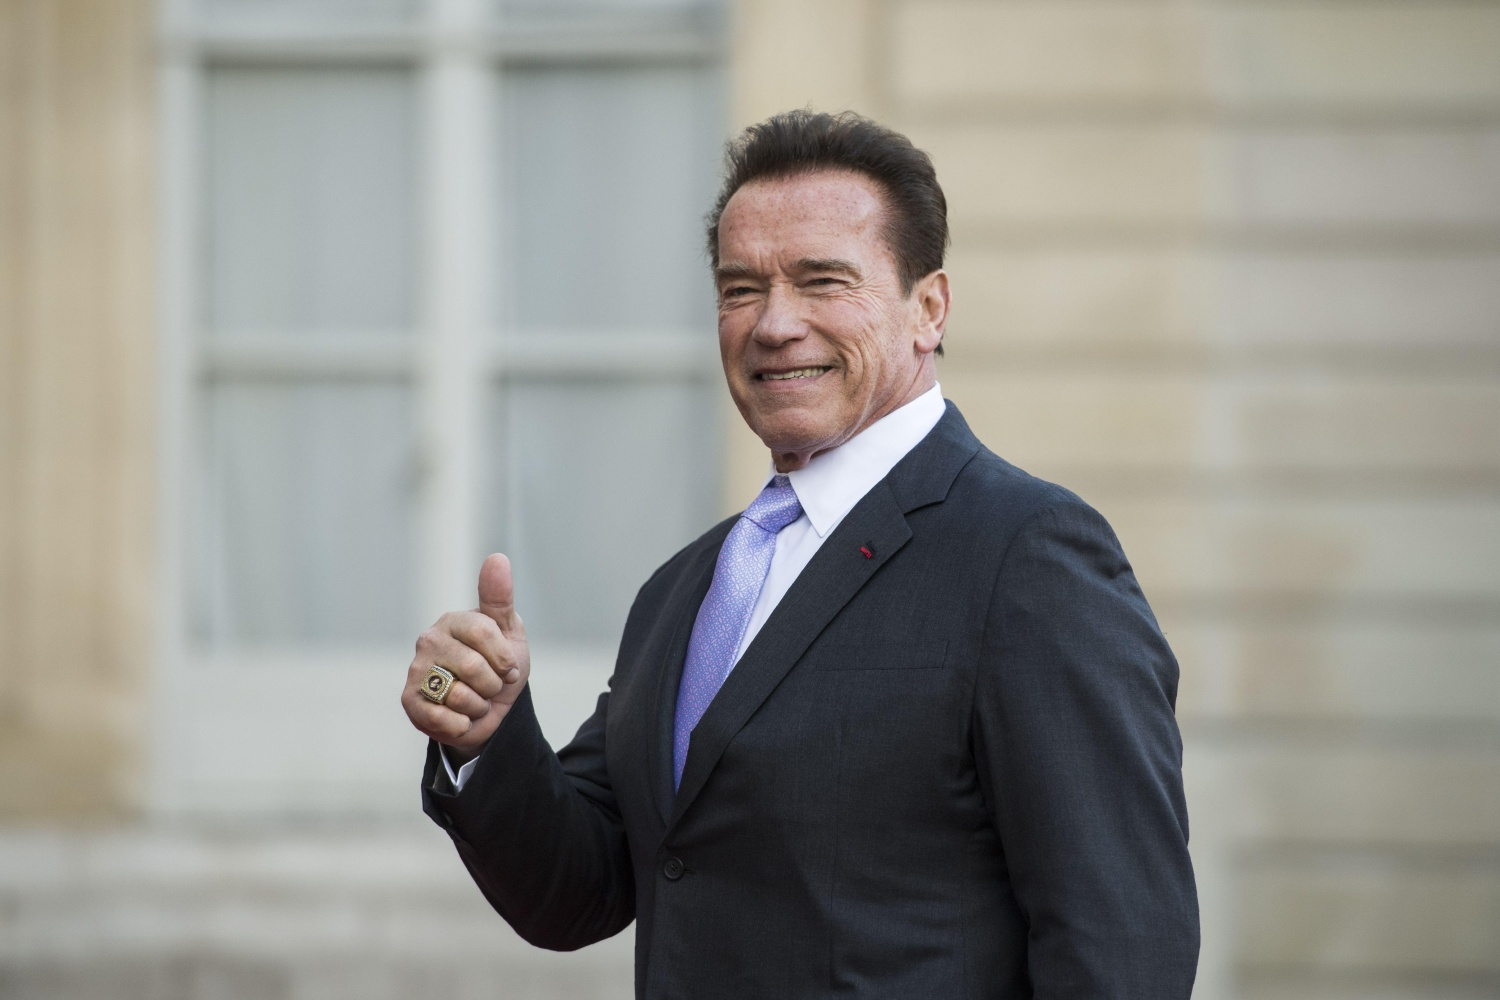 'You're very kind': Schwarzenegger updates well-wishers following his heart surgery